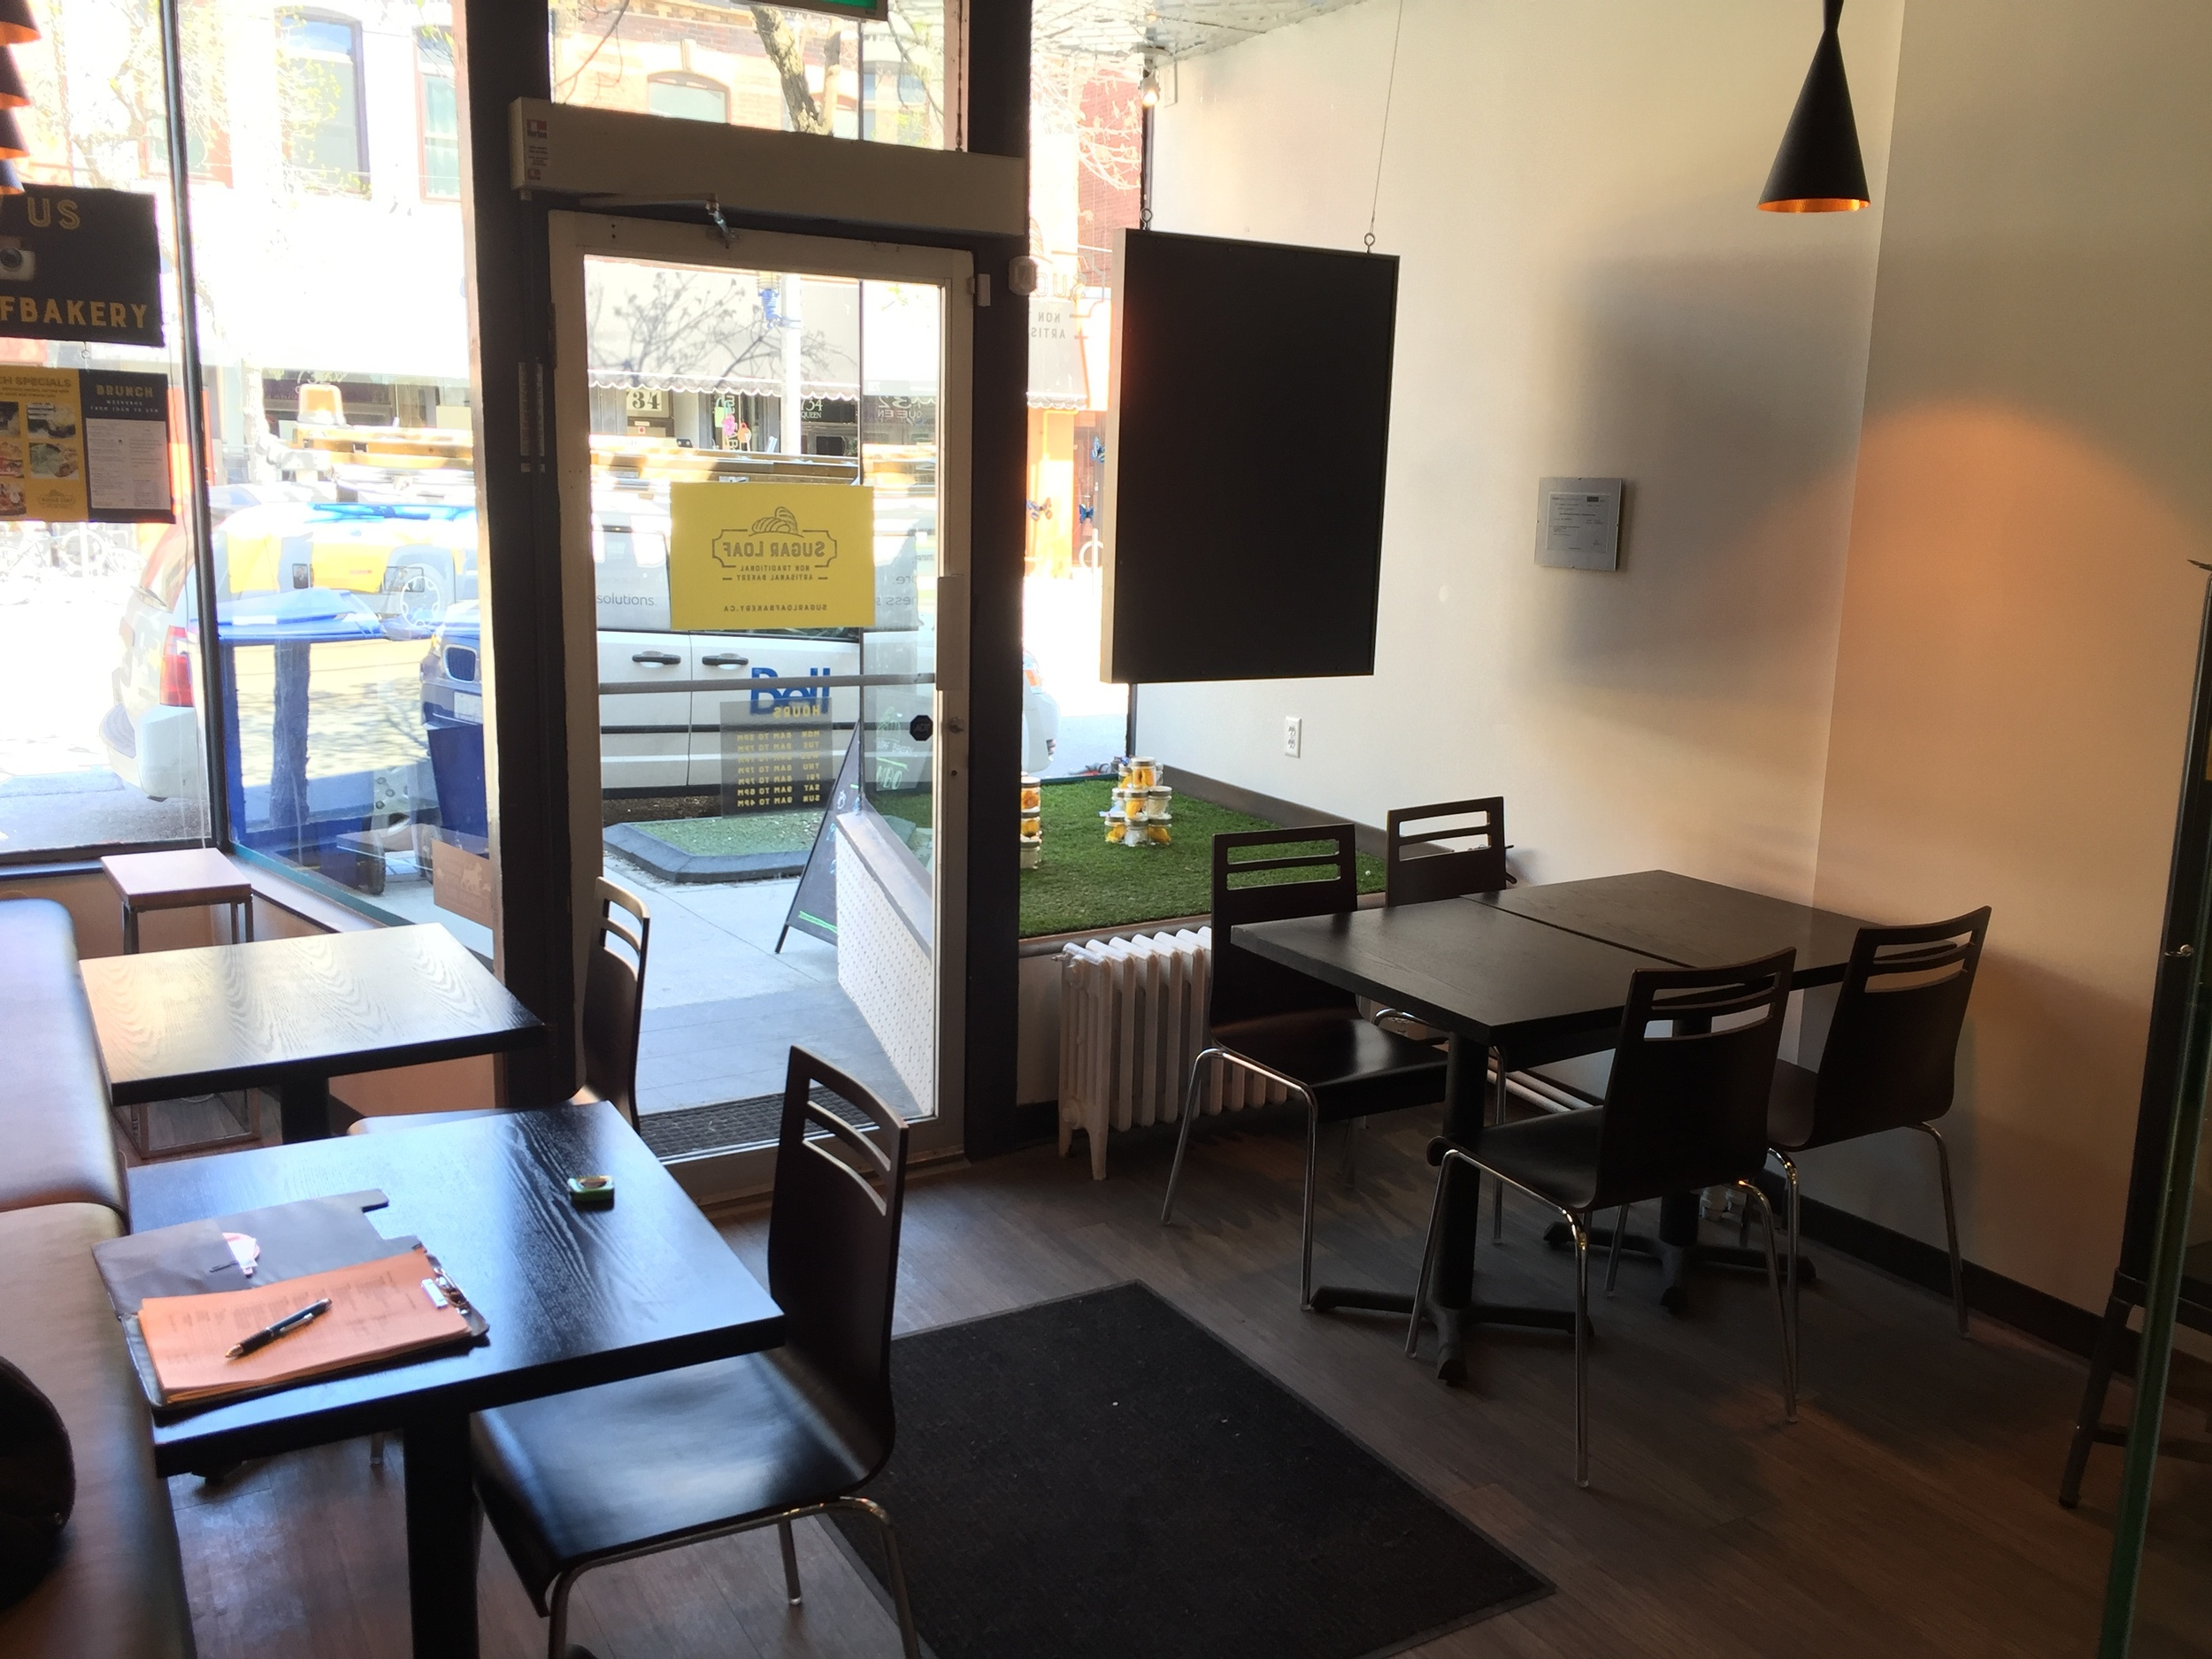 Picture of entrance from the inside. Three standard height tables displayed